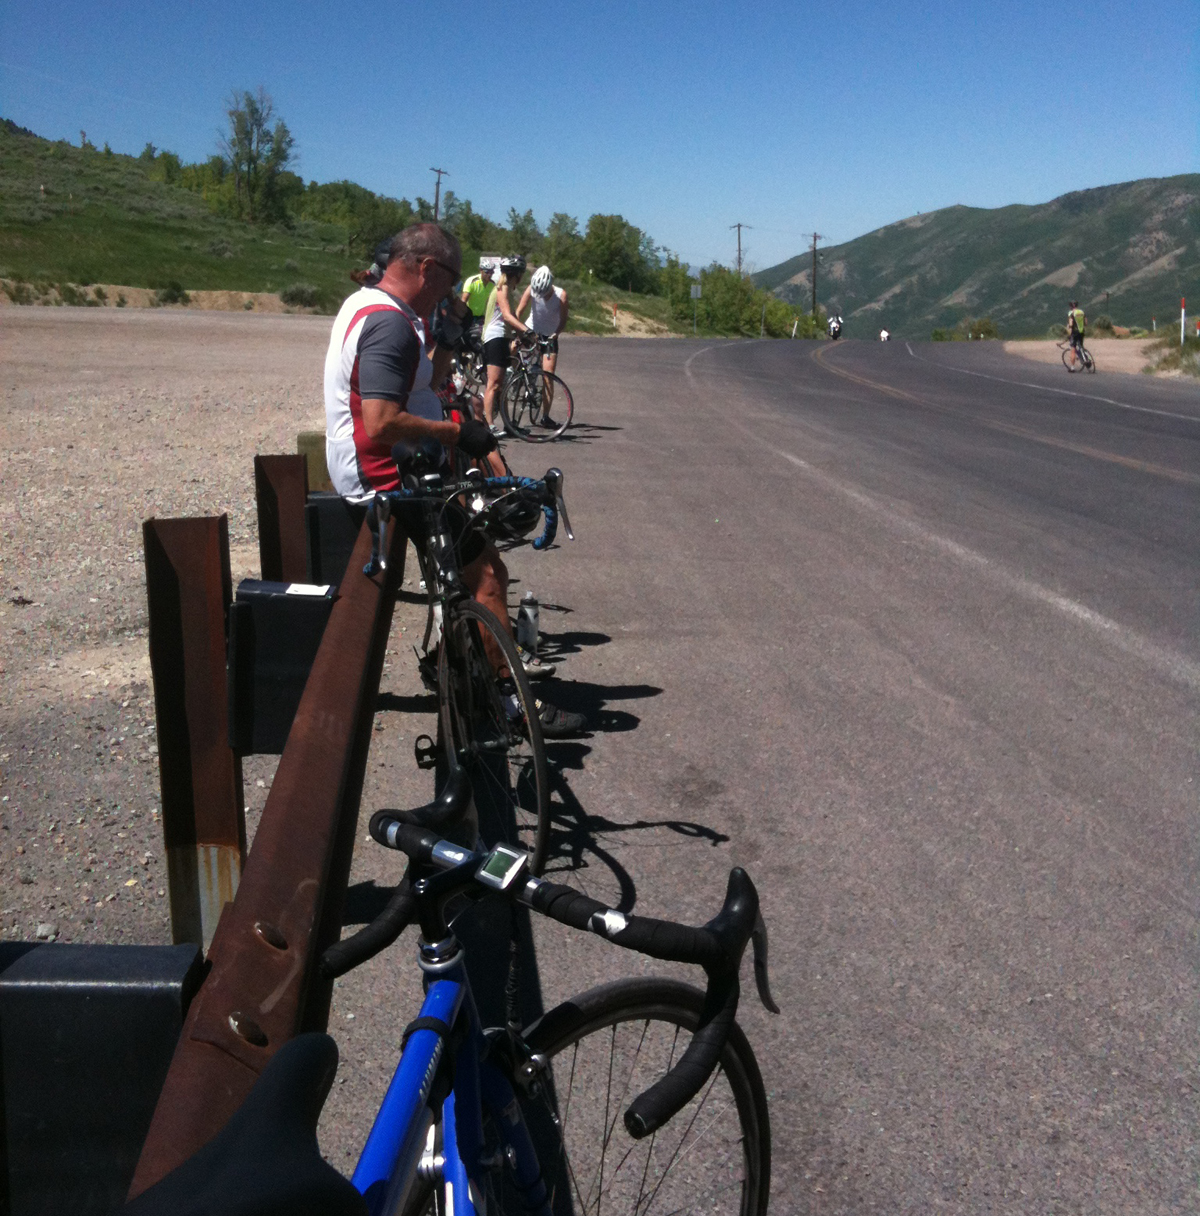 Cyclists congregate on the Little Mountain Summit at the top of Emigration Canyon. Emigration Canyon is the most popular recreational bike ride in Utah. Photo by Dave Iltis